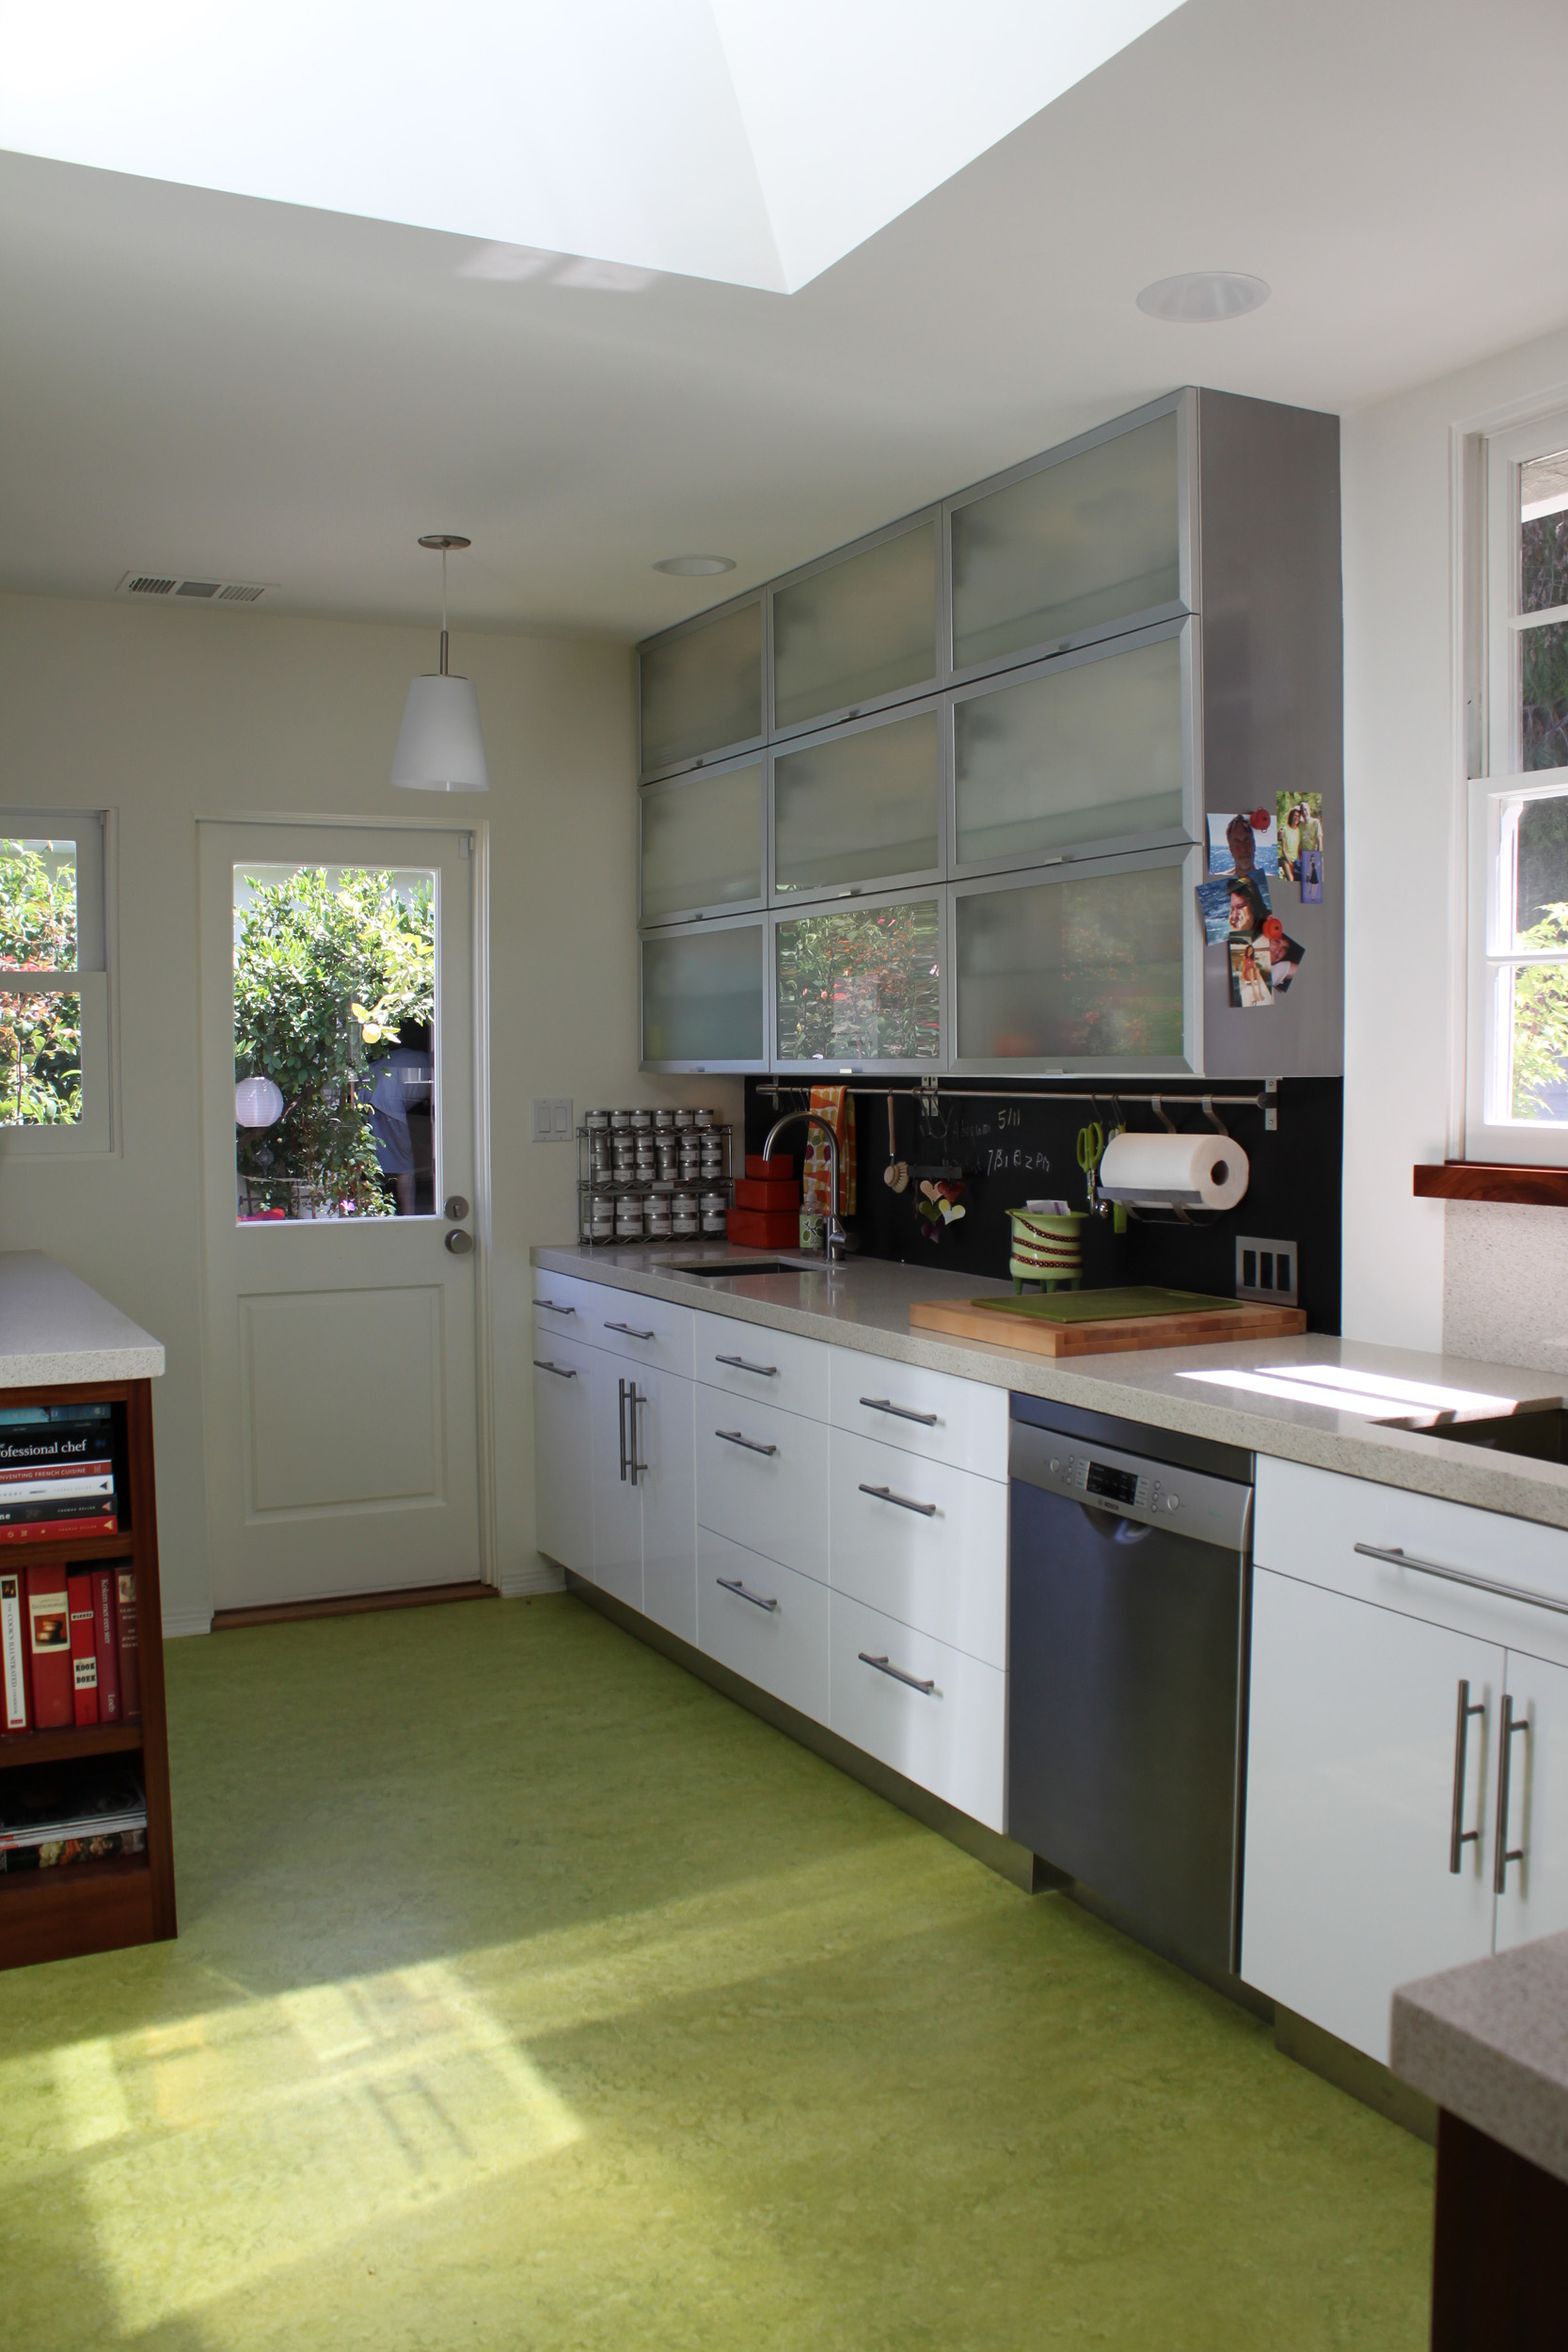 Bright and lively small modern kitchen with white cabinets, glass awning uppers, quartz countertops, blackboard backsplash, bar sink, and green flooring